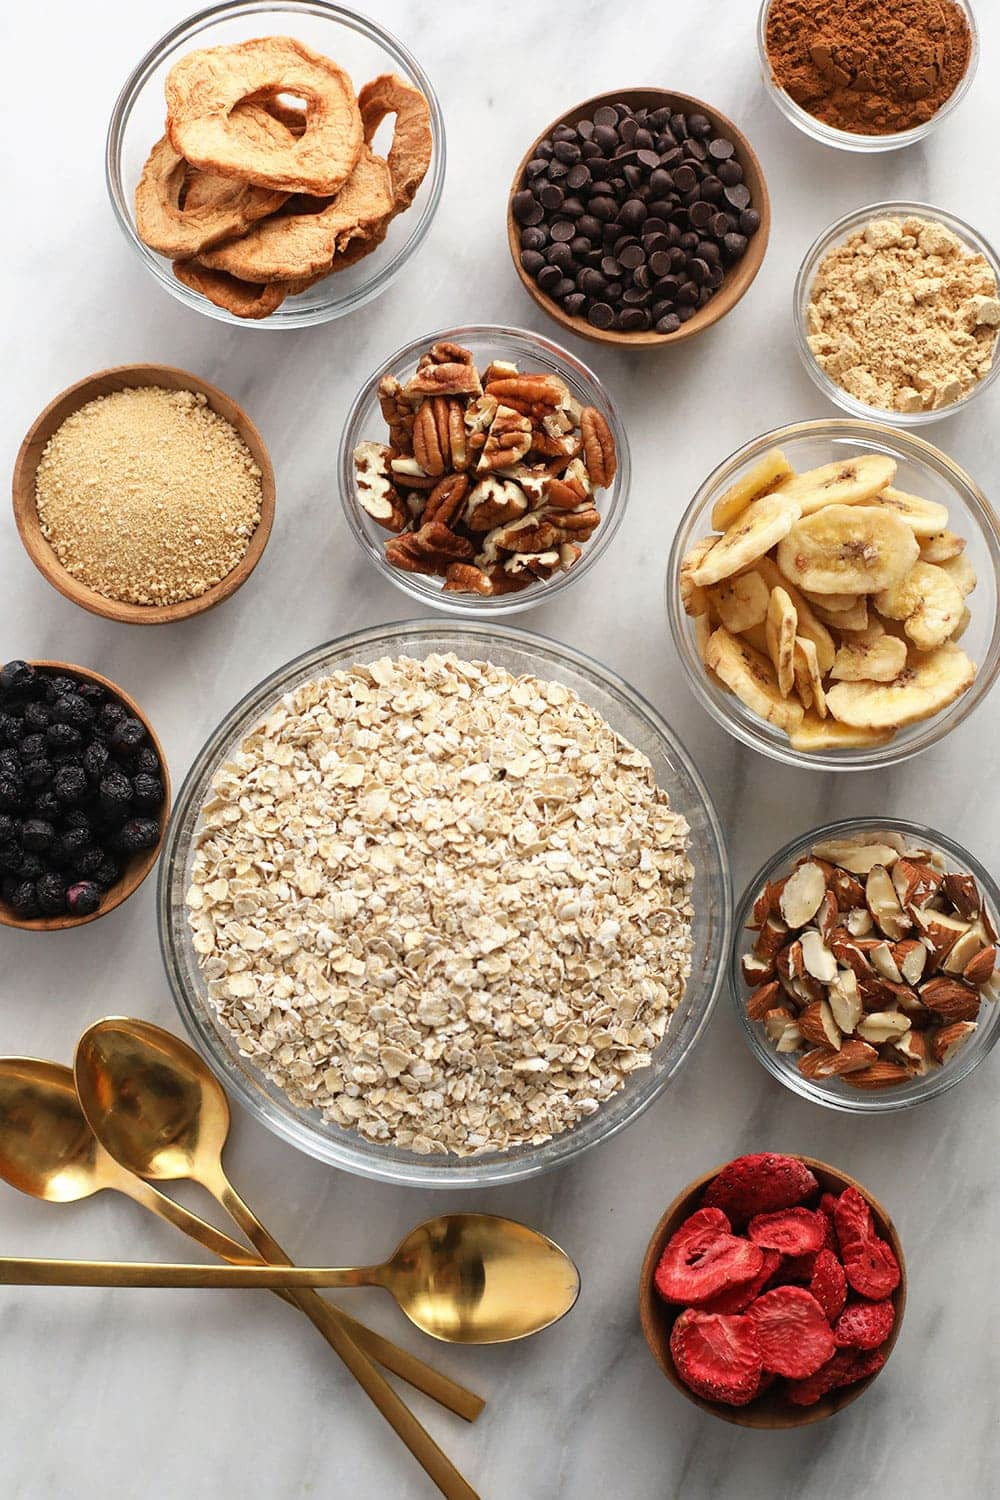 instant oatmeal and ingredient toppings ready to be mixed into delicious oatmeal